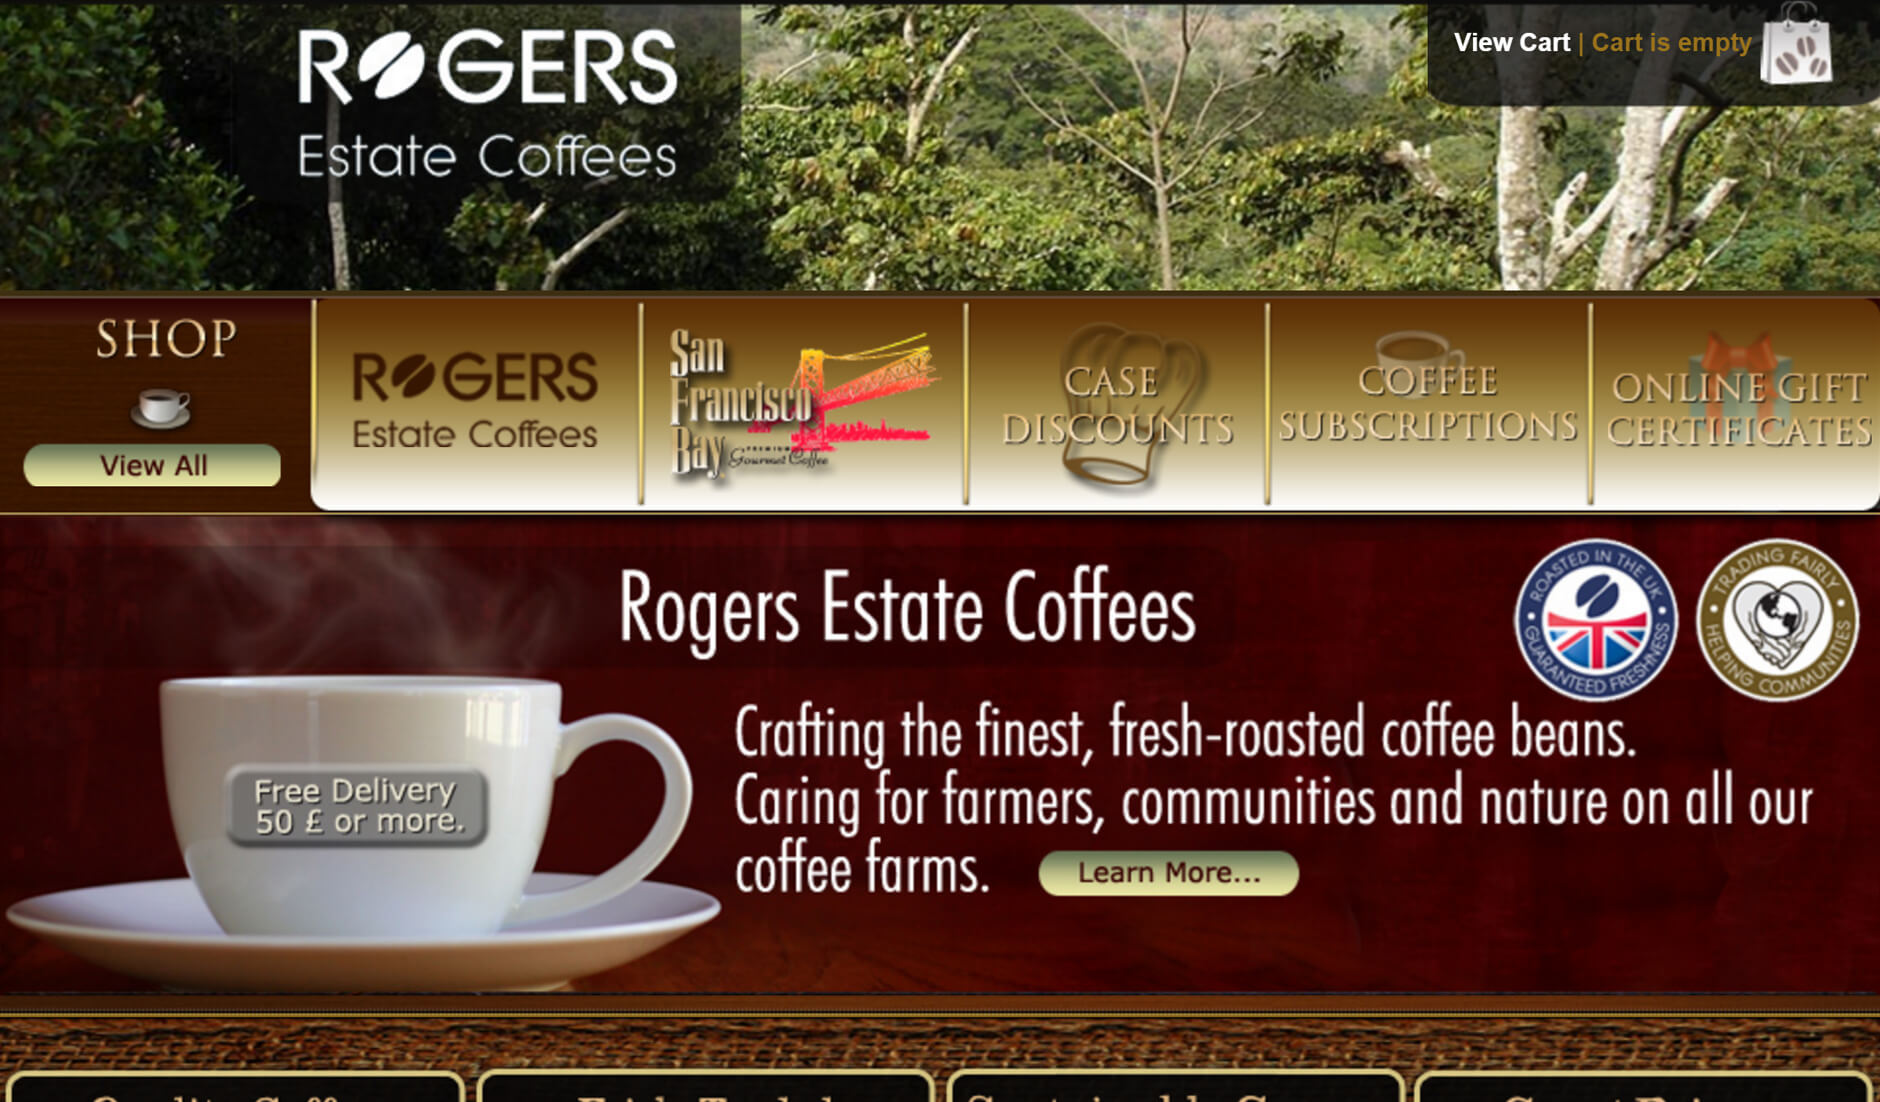 Rogers Estate Coffees website design by Janieart.com